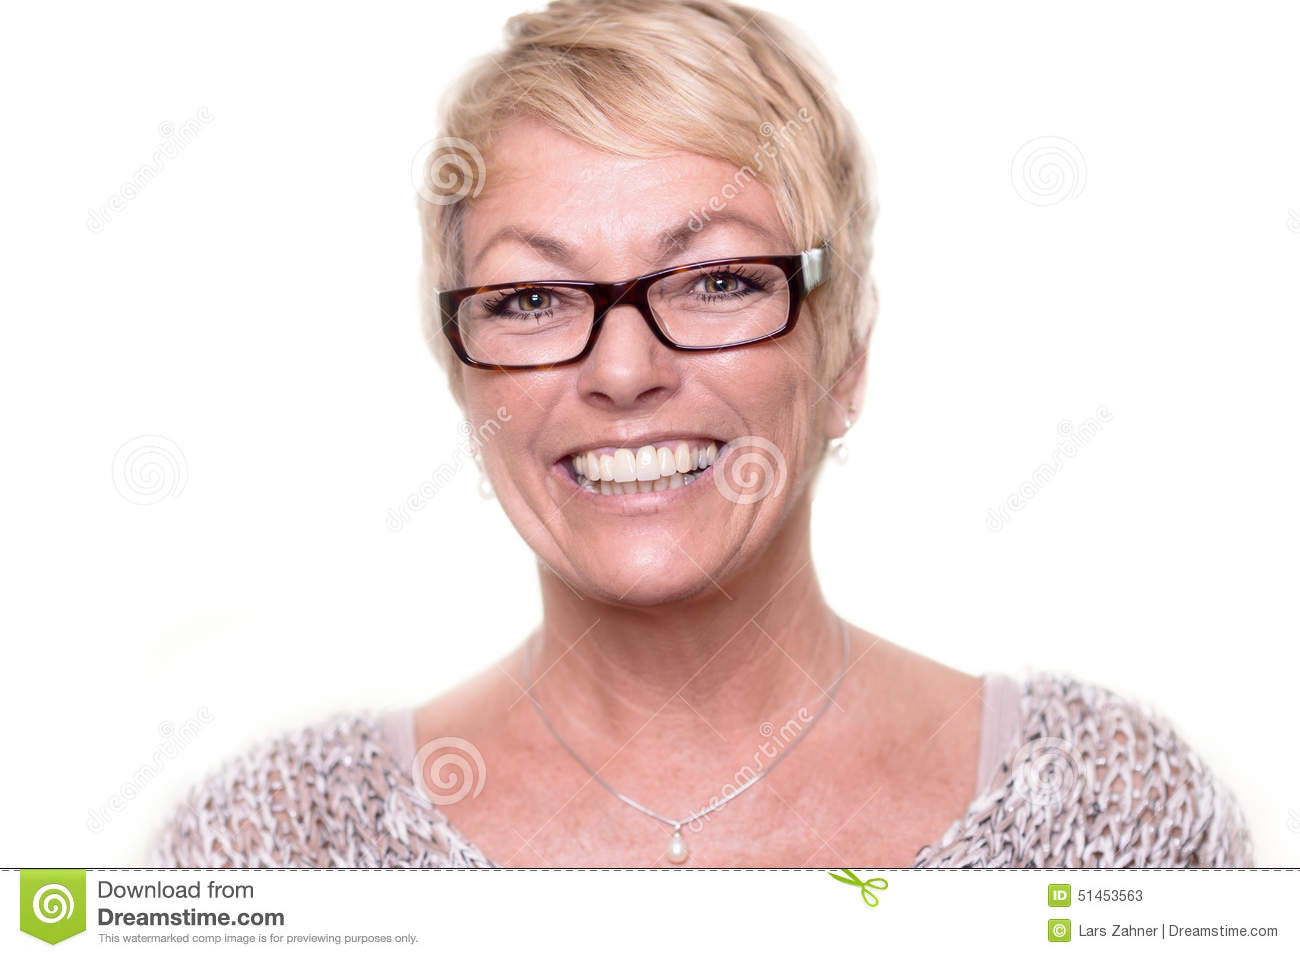 happy-attractive-blond-woman-wearing-glasses-head-shoulders-portrait-middle-aged-looking-camera-lovely-51453563.jpg